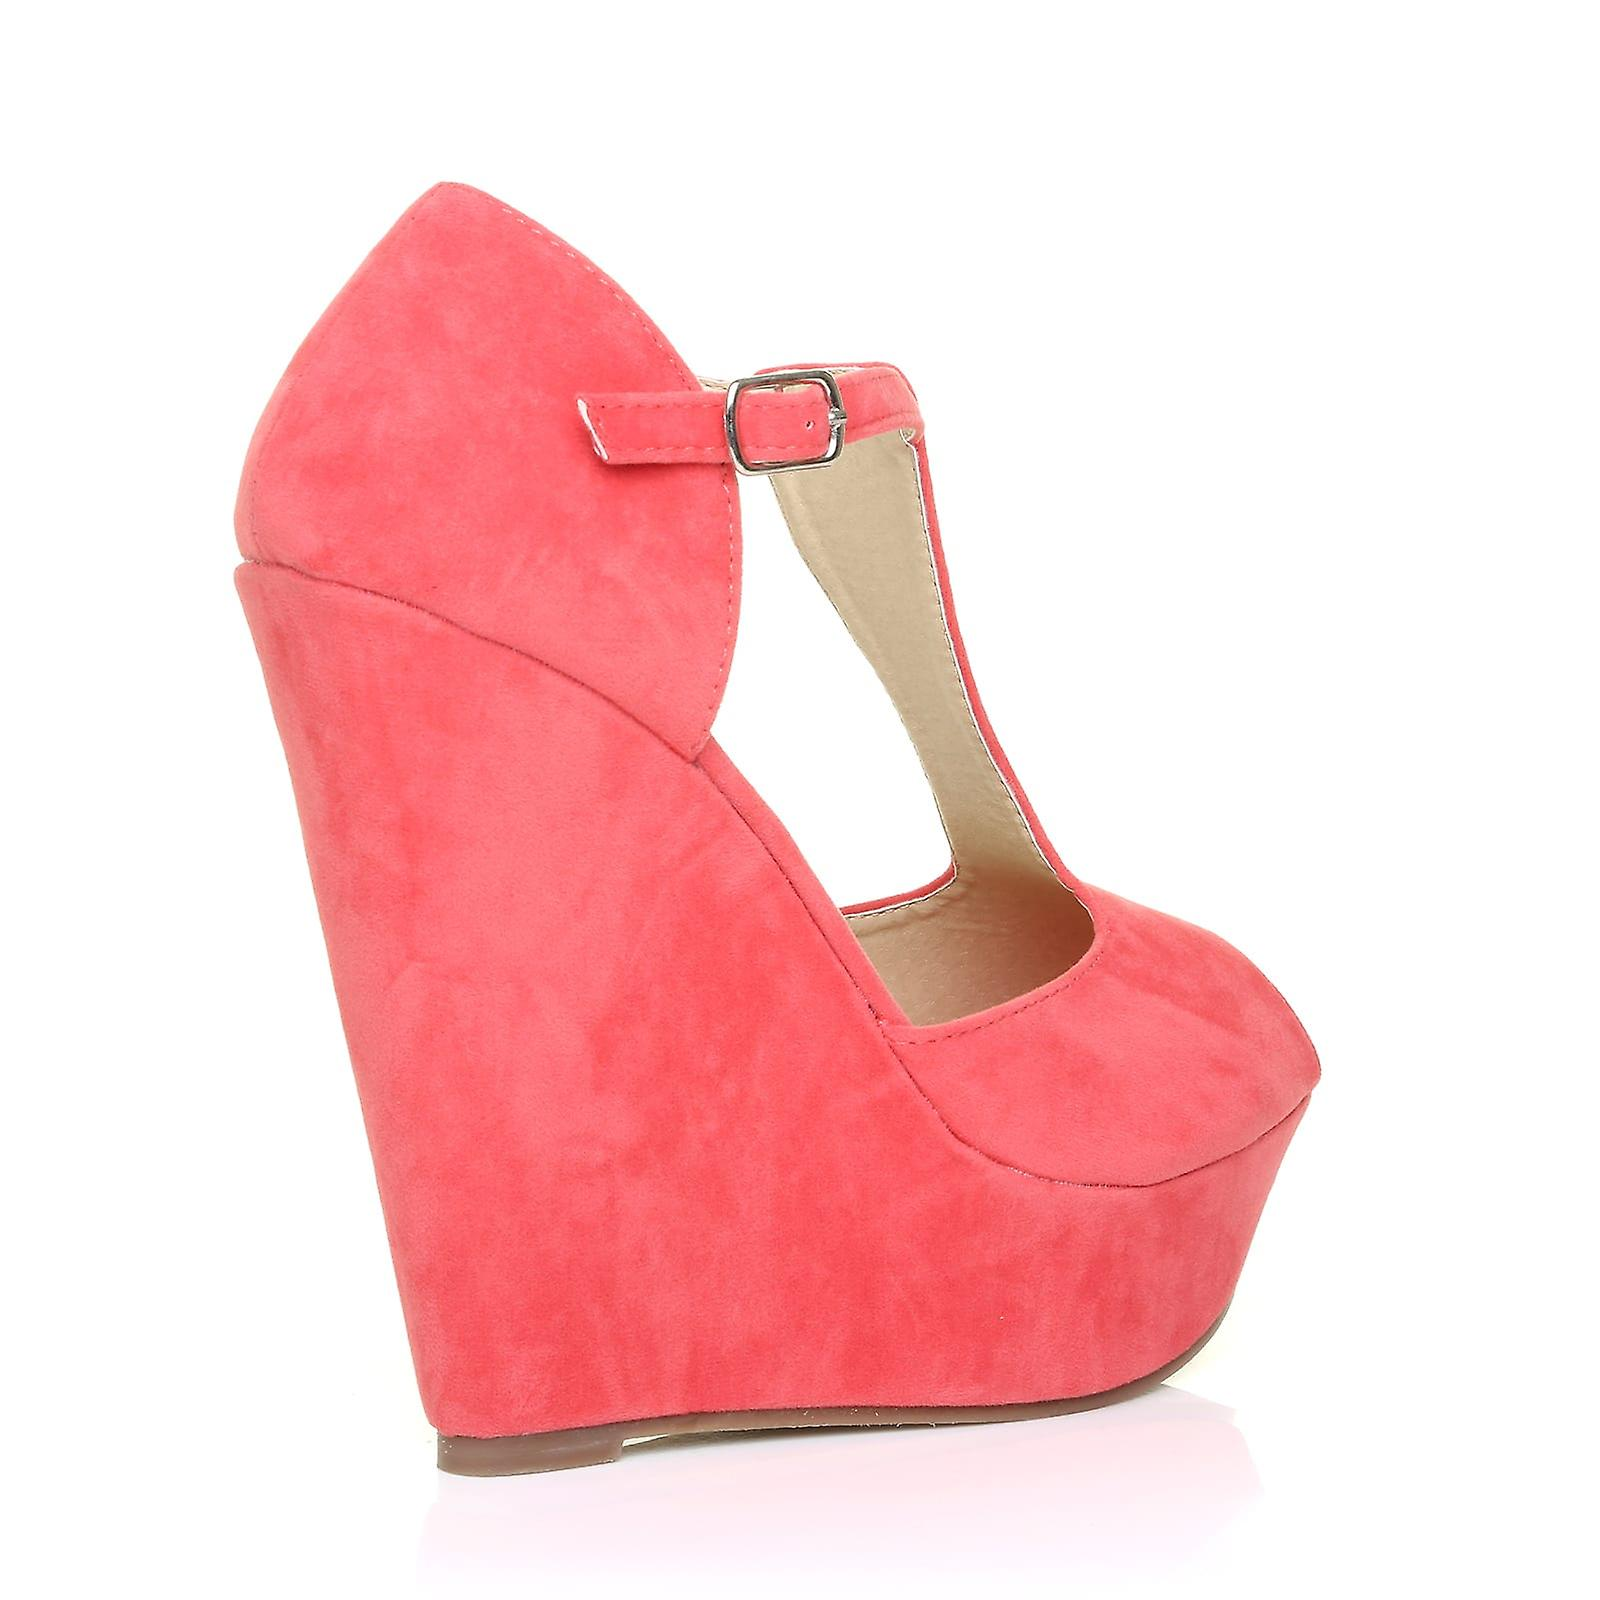 f41244351d6e VICKY Coral Faux Suede T-Bar Peep Toe Platform Wedge Sandals